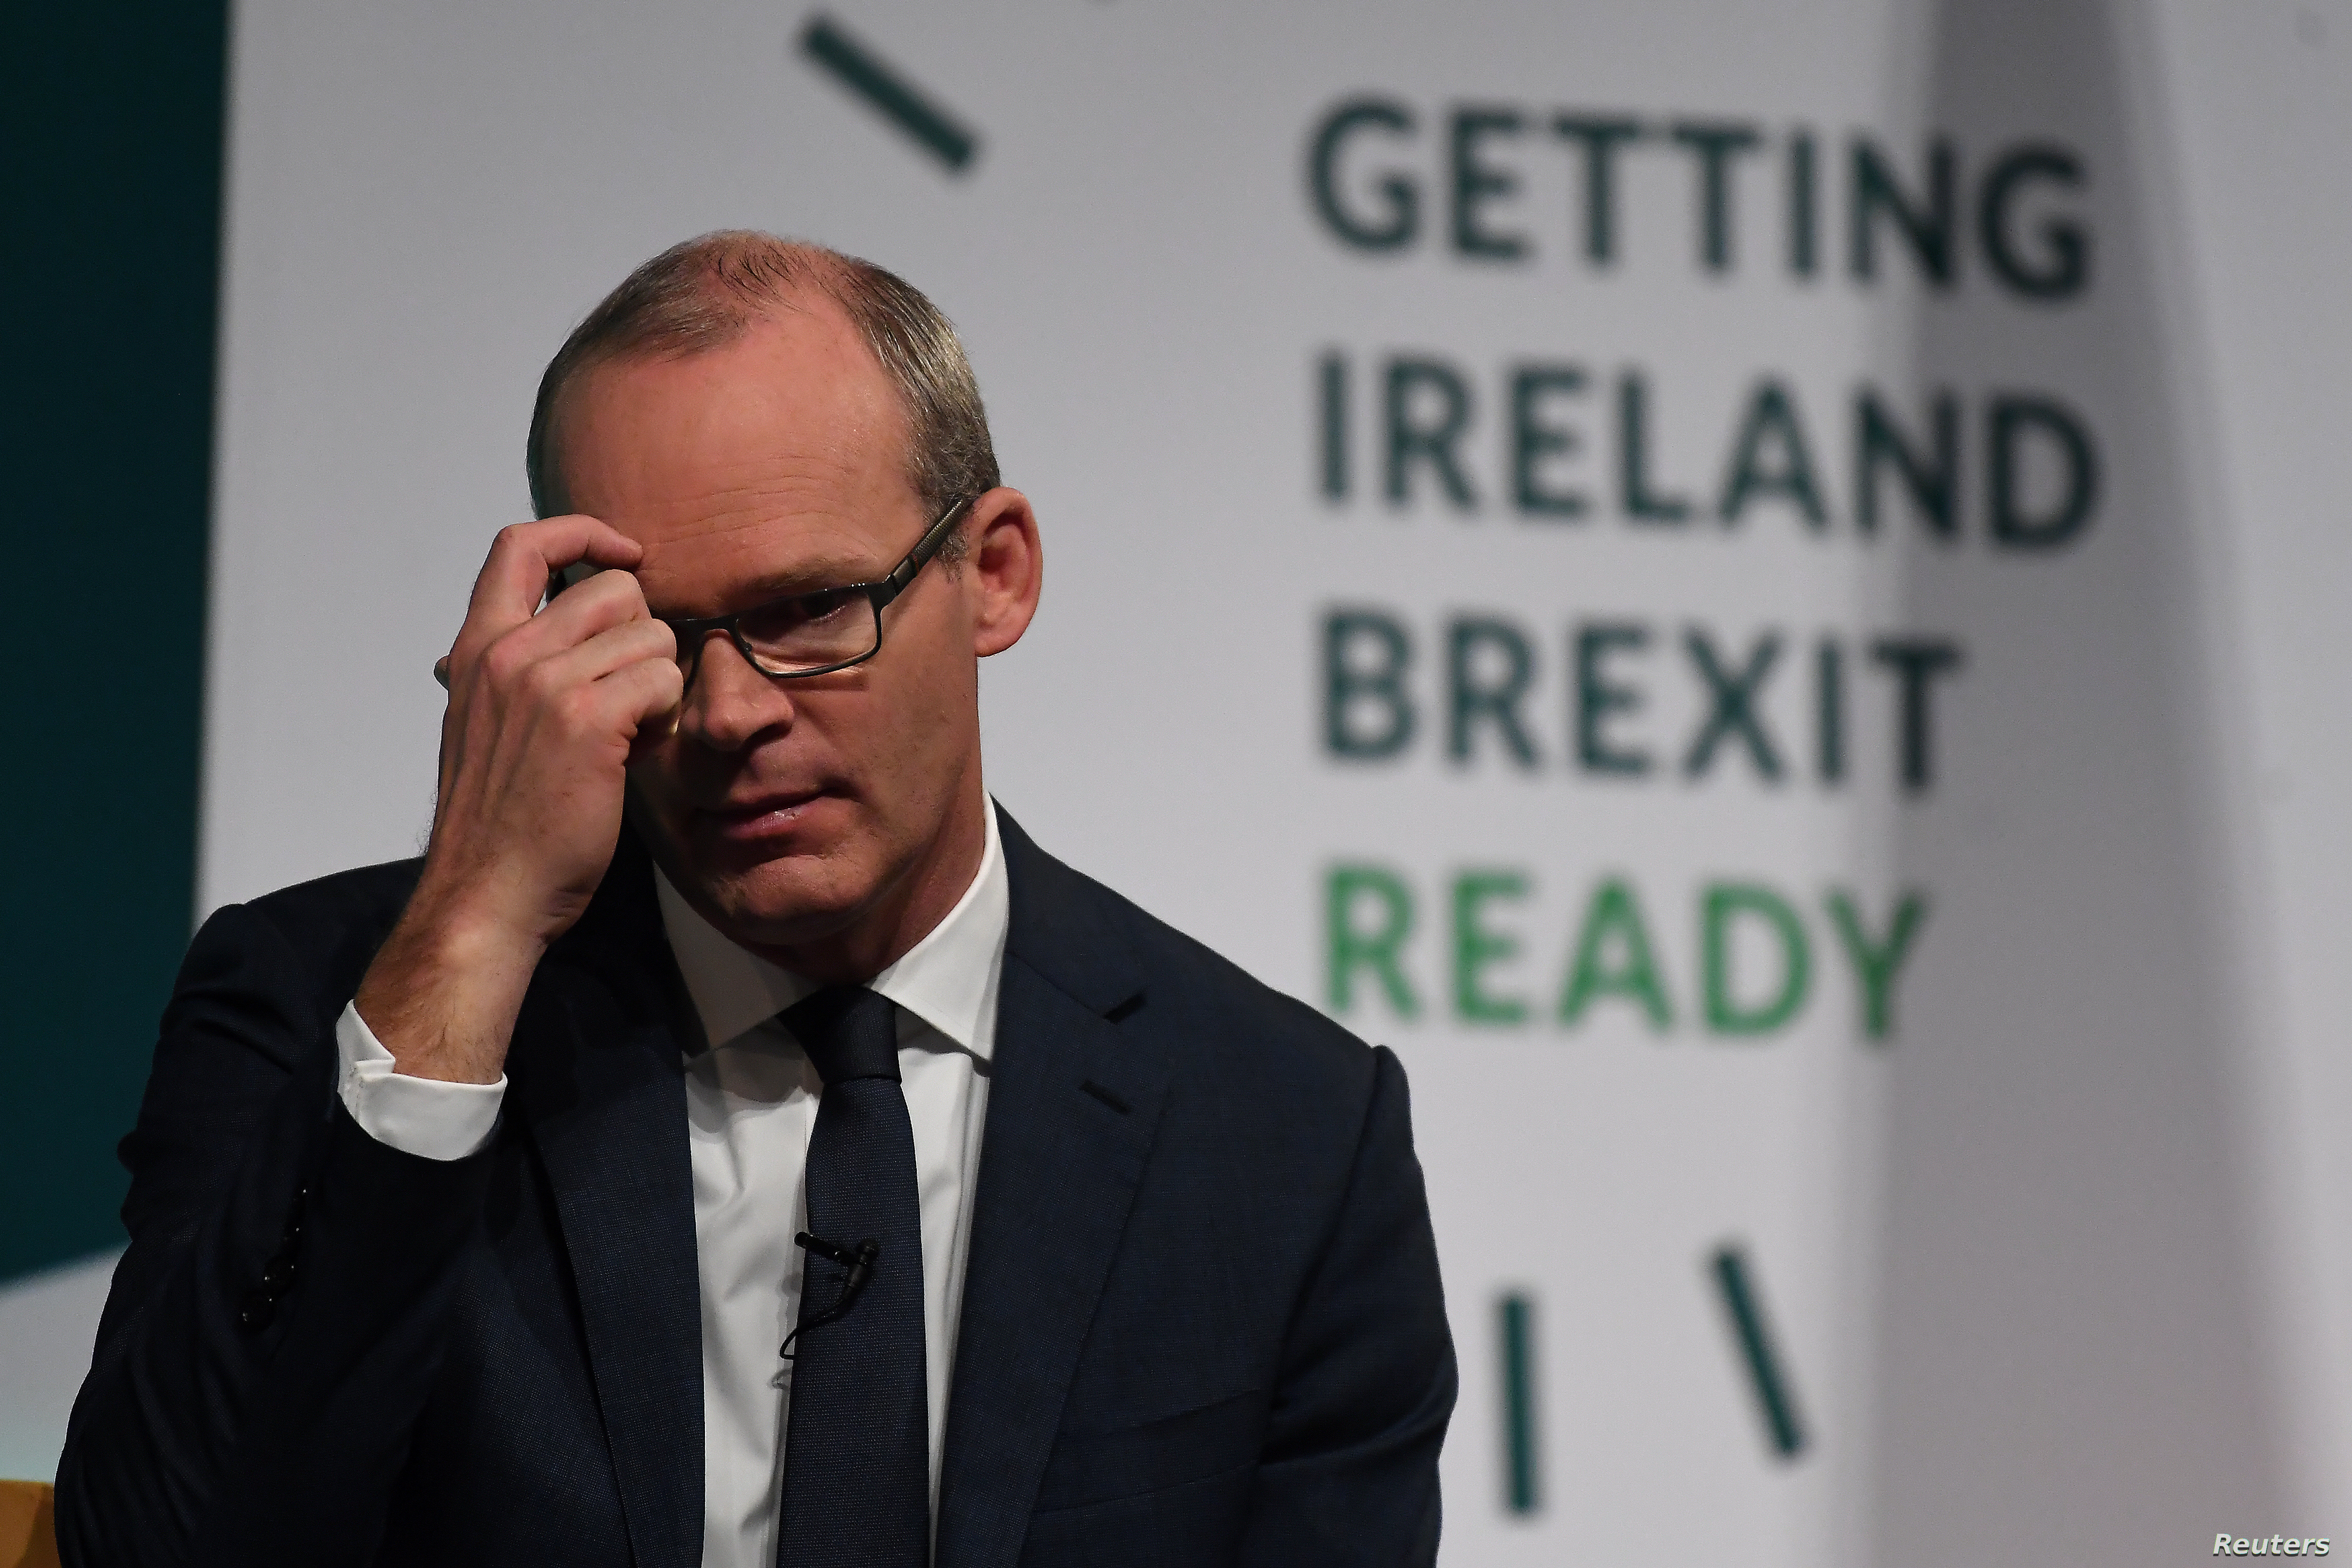 FILE PHOTO: Ireland's Minister for Foreign Affairs and Trade, Simon Coveney, speaks at a 'Getting Ireland Brexit Ready' workshop at the Convention Center in Dublin, Oct. 25, 2018.